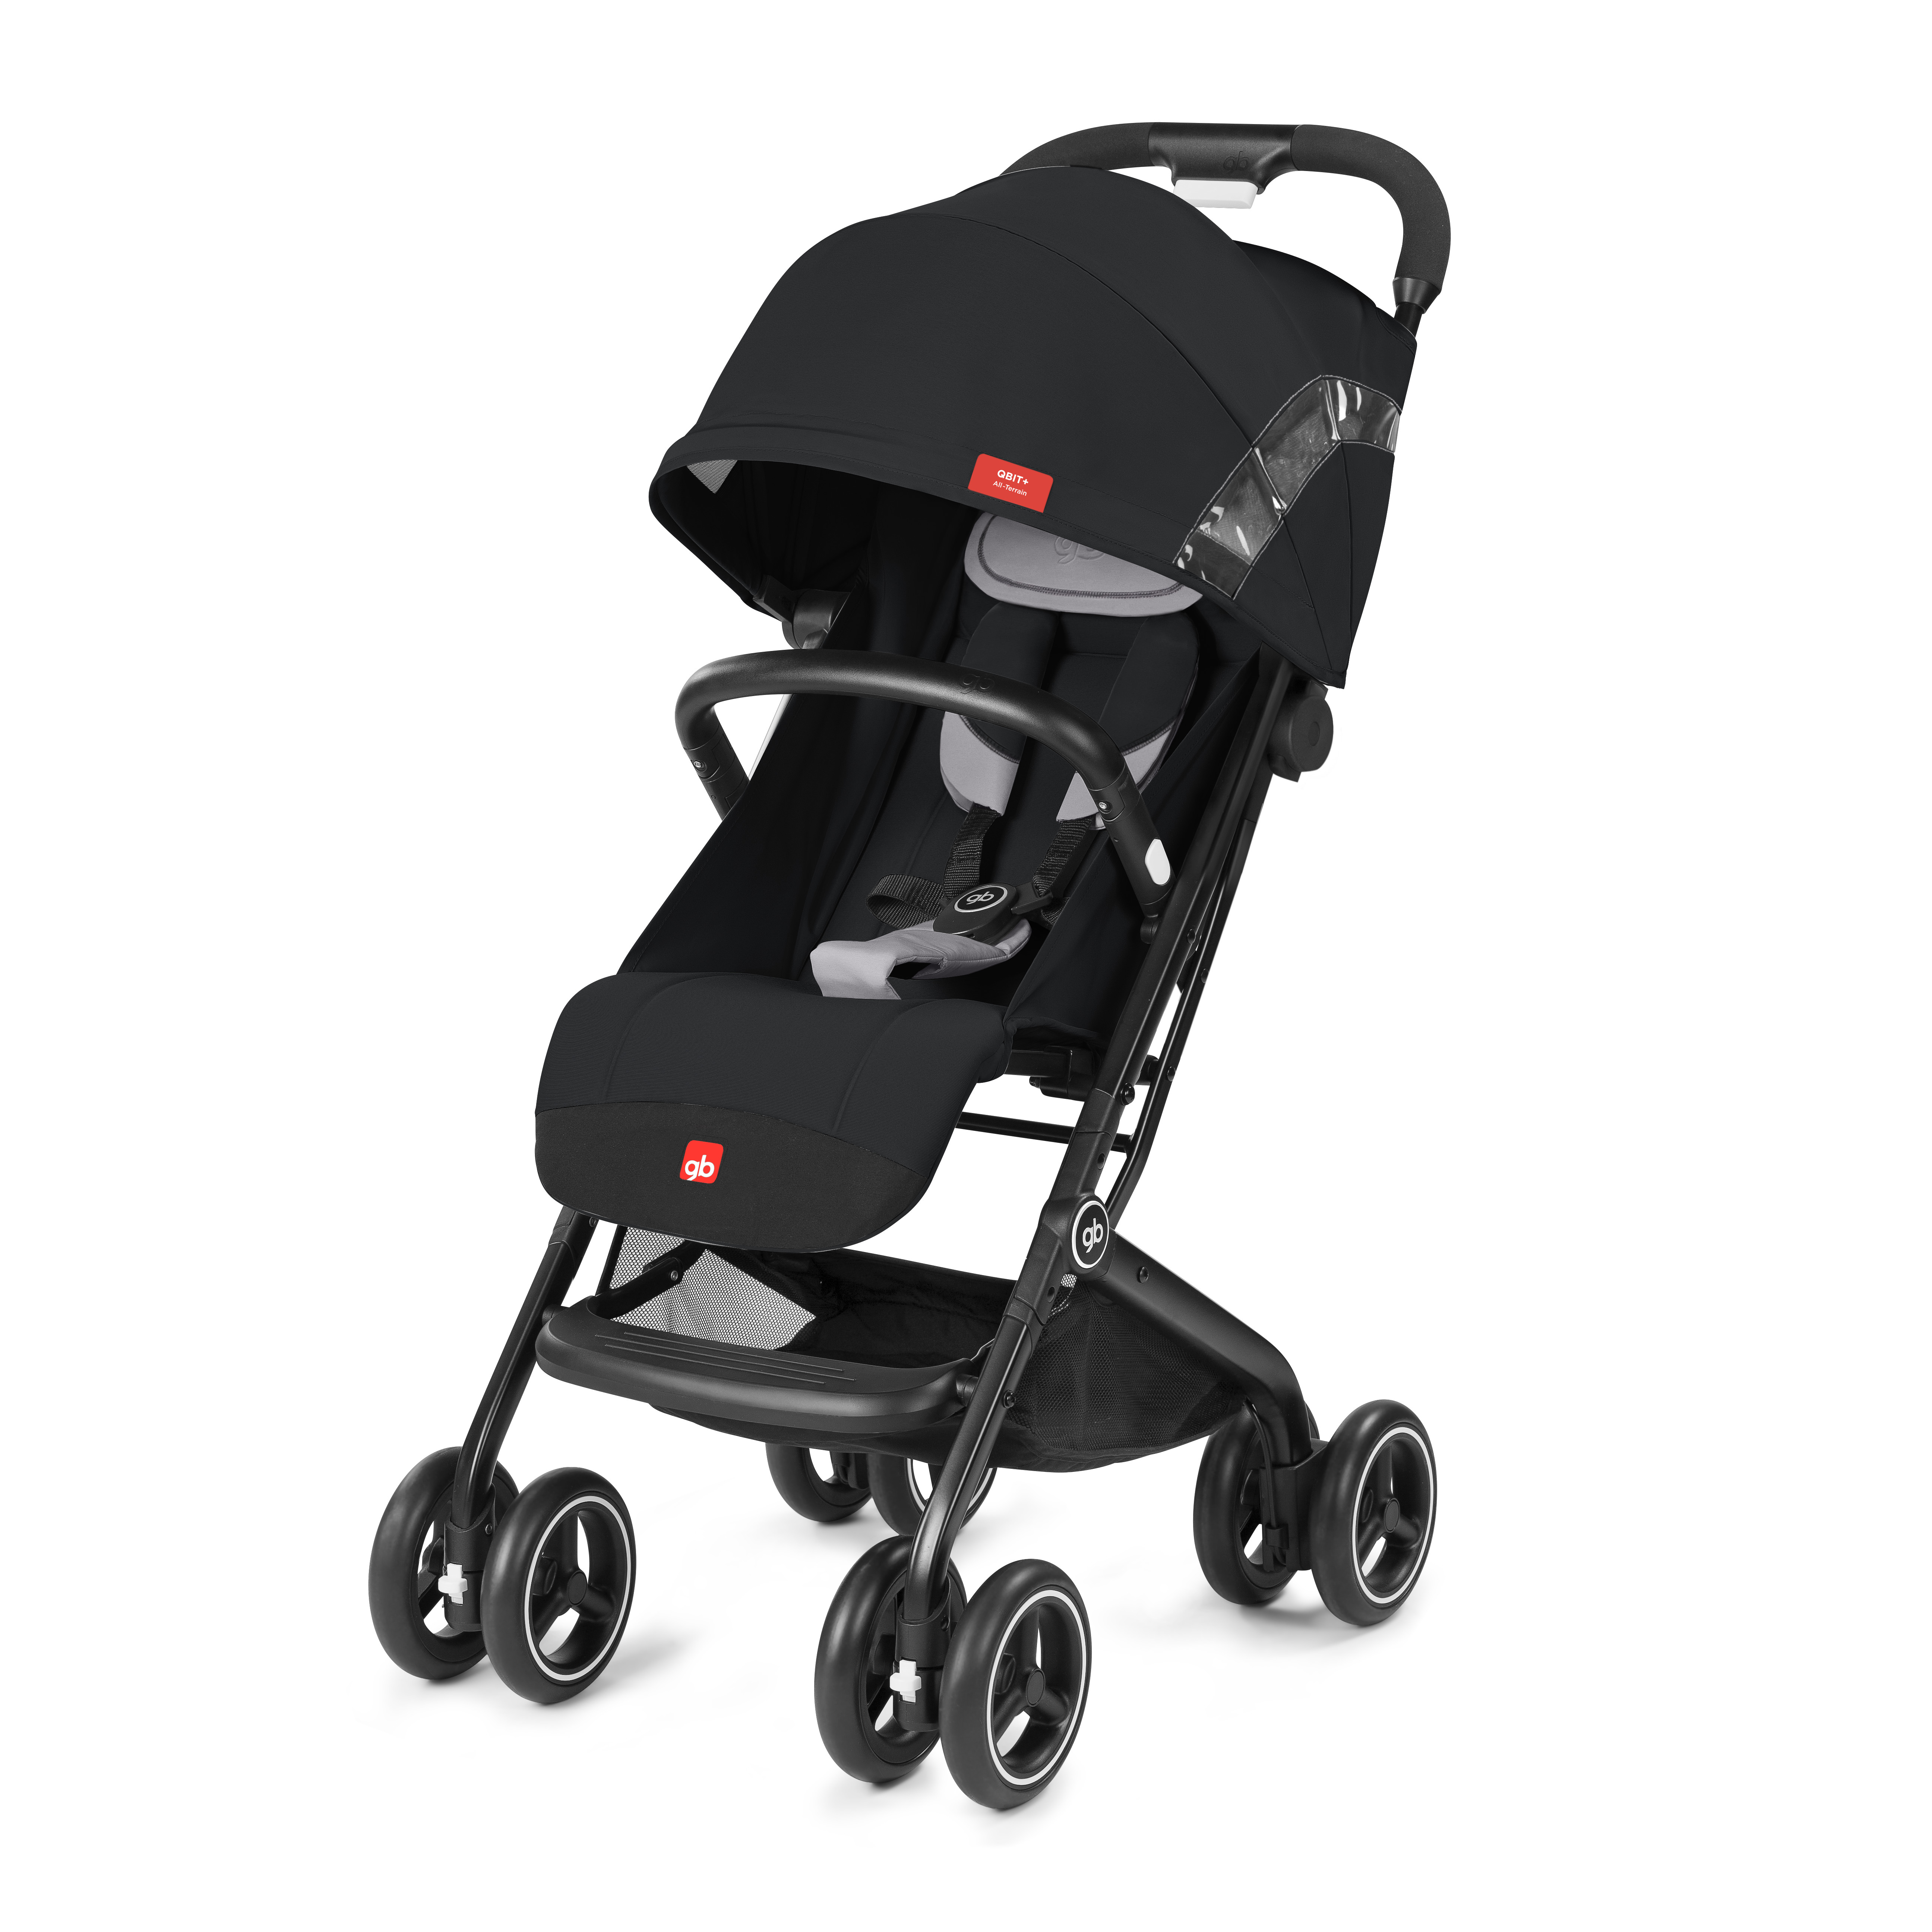 Cybex Buggy Liegeposition Qbit Luxury Travel Stroller